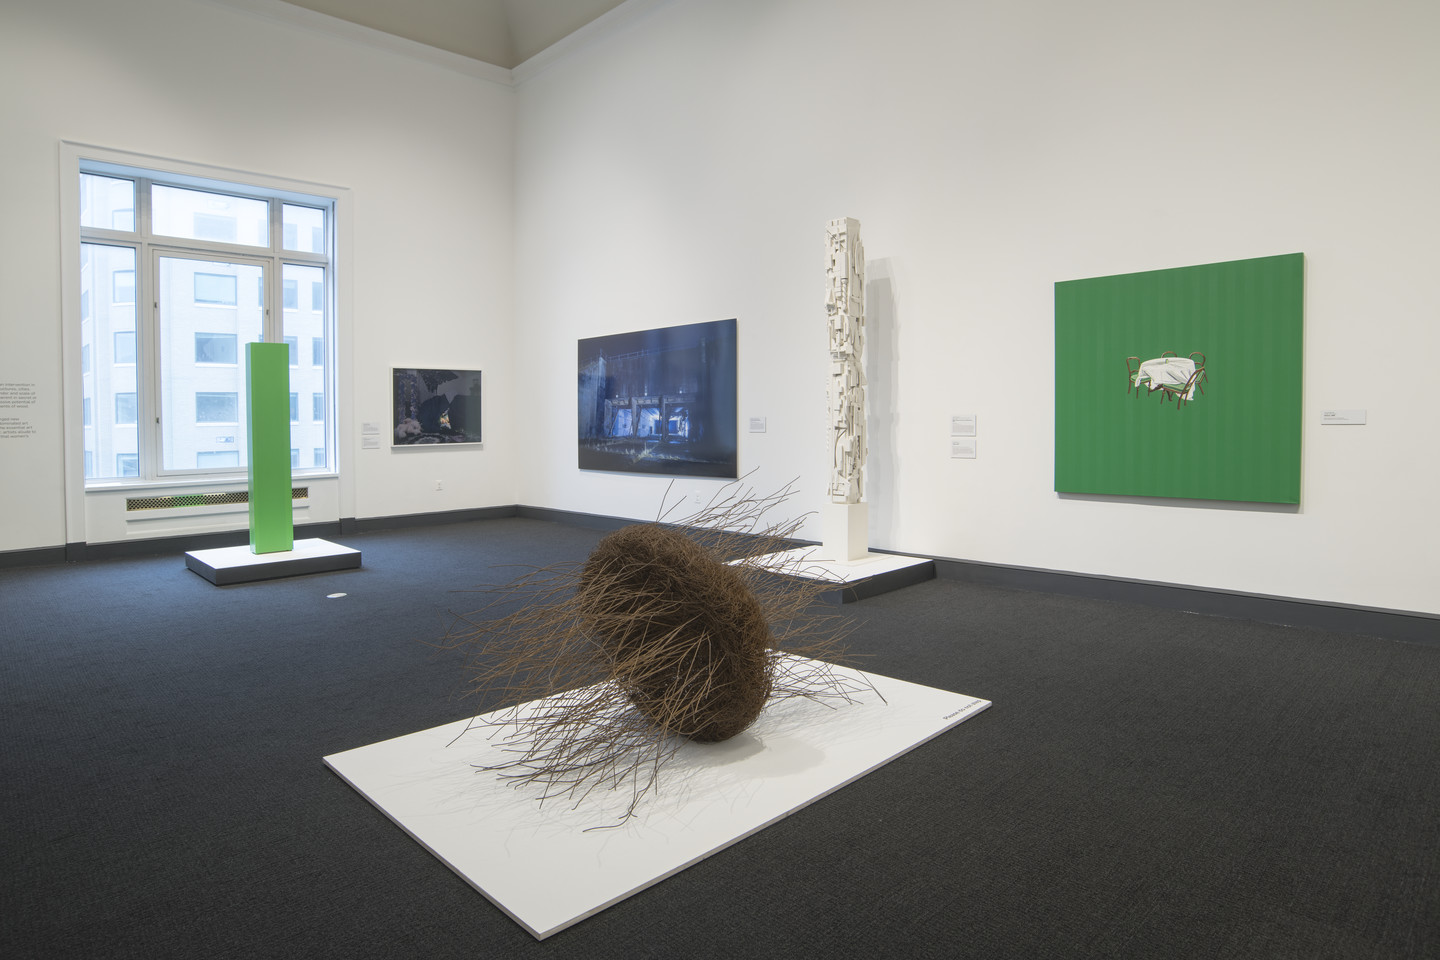 Partial view of a gallery with six contemporary artworks, including painting of small chairs and table with white tablecloth centered on a neon green background, two photographs on adjacent walls, three sculptures rest on white platforms on the floor.